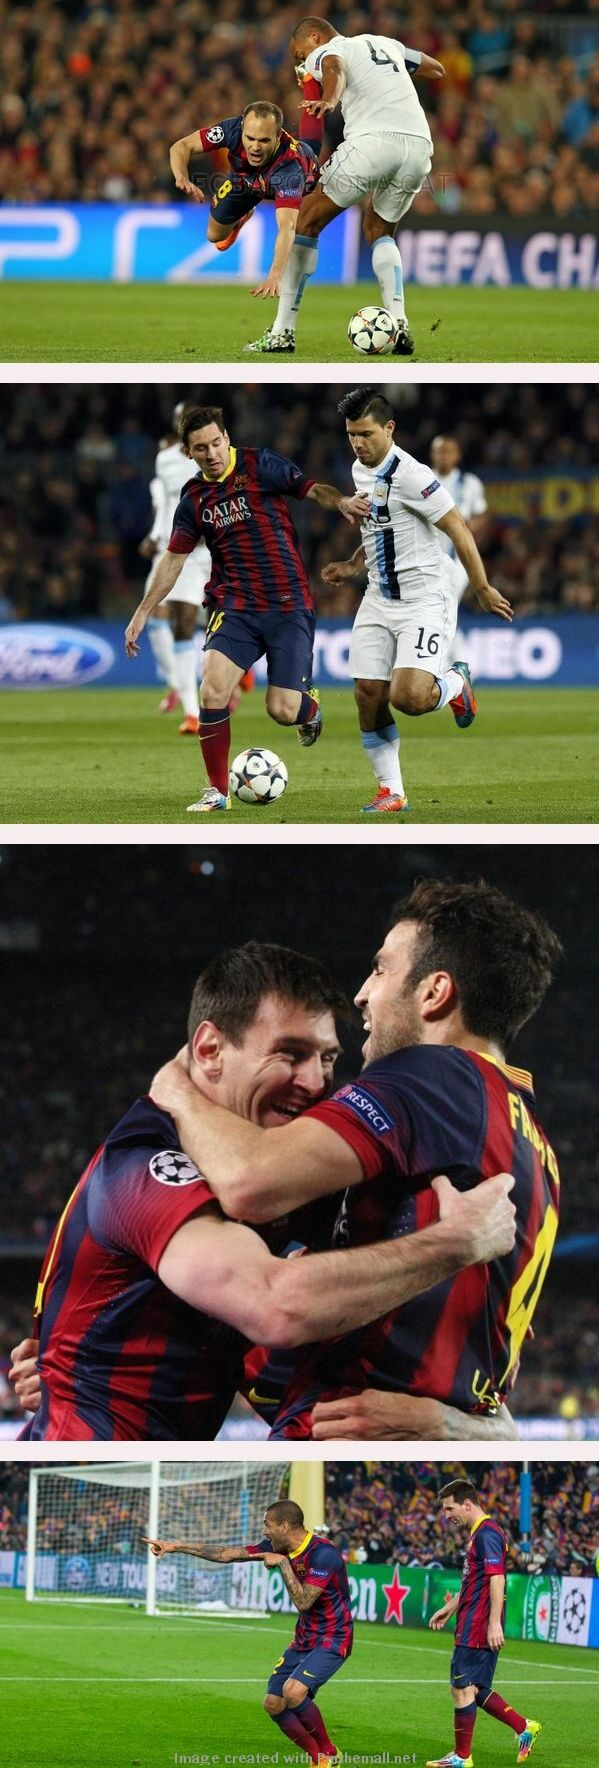 190. Iniesta with his usual all-out effort; Messi moves in attack; Cesc and Leo celebrate Messi's goal (1-0); Alves following his goal at 90:00 to make it a 2-1 victory, 4-1 on aggregate.